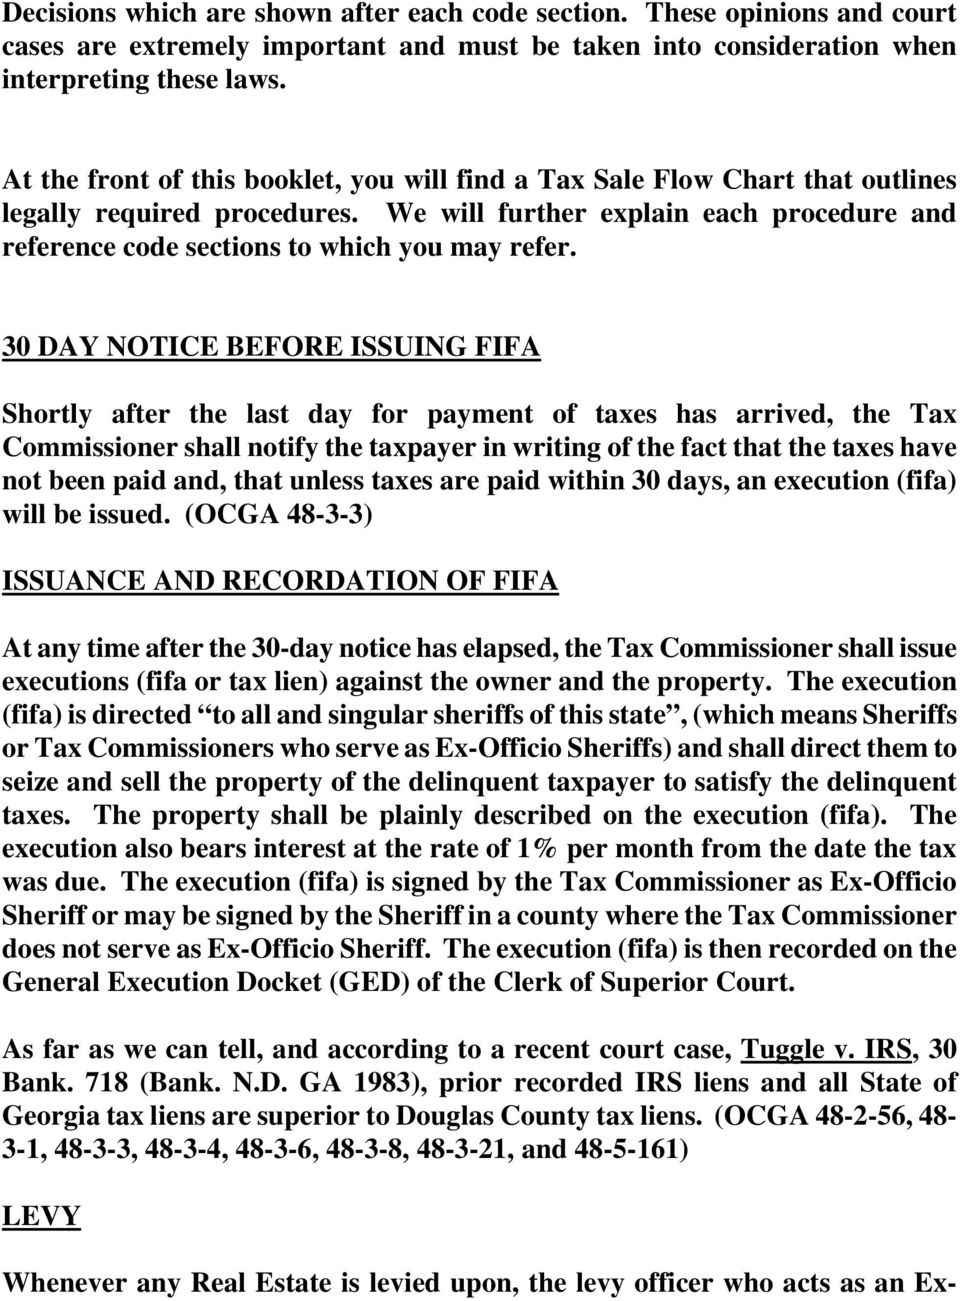 REAL PROPERTY TODD COWAN TAX COMMISSIONER AND EX-OFFICIO